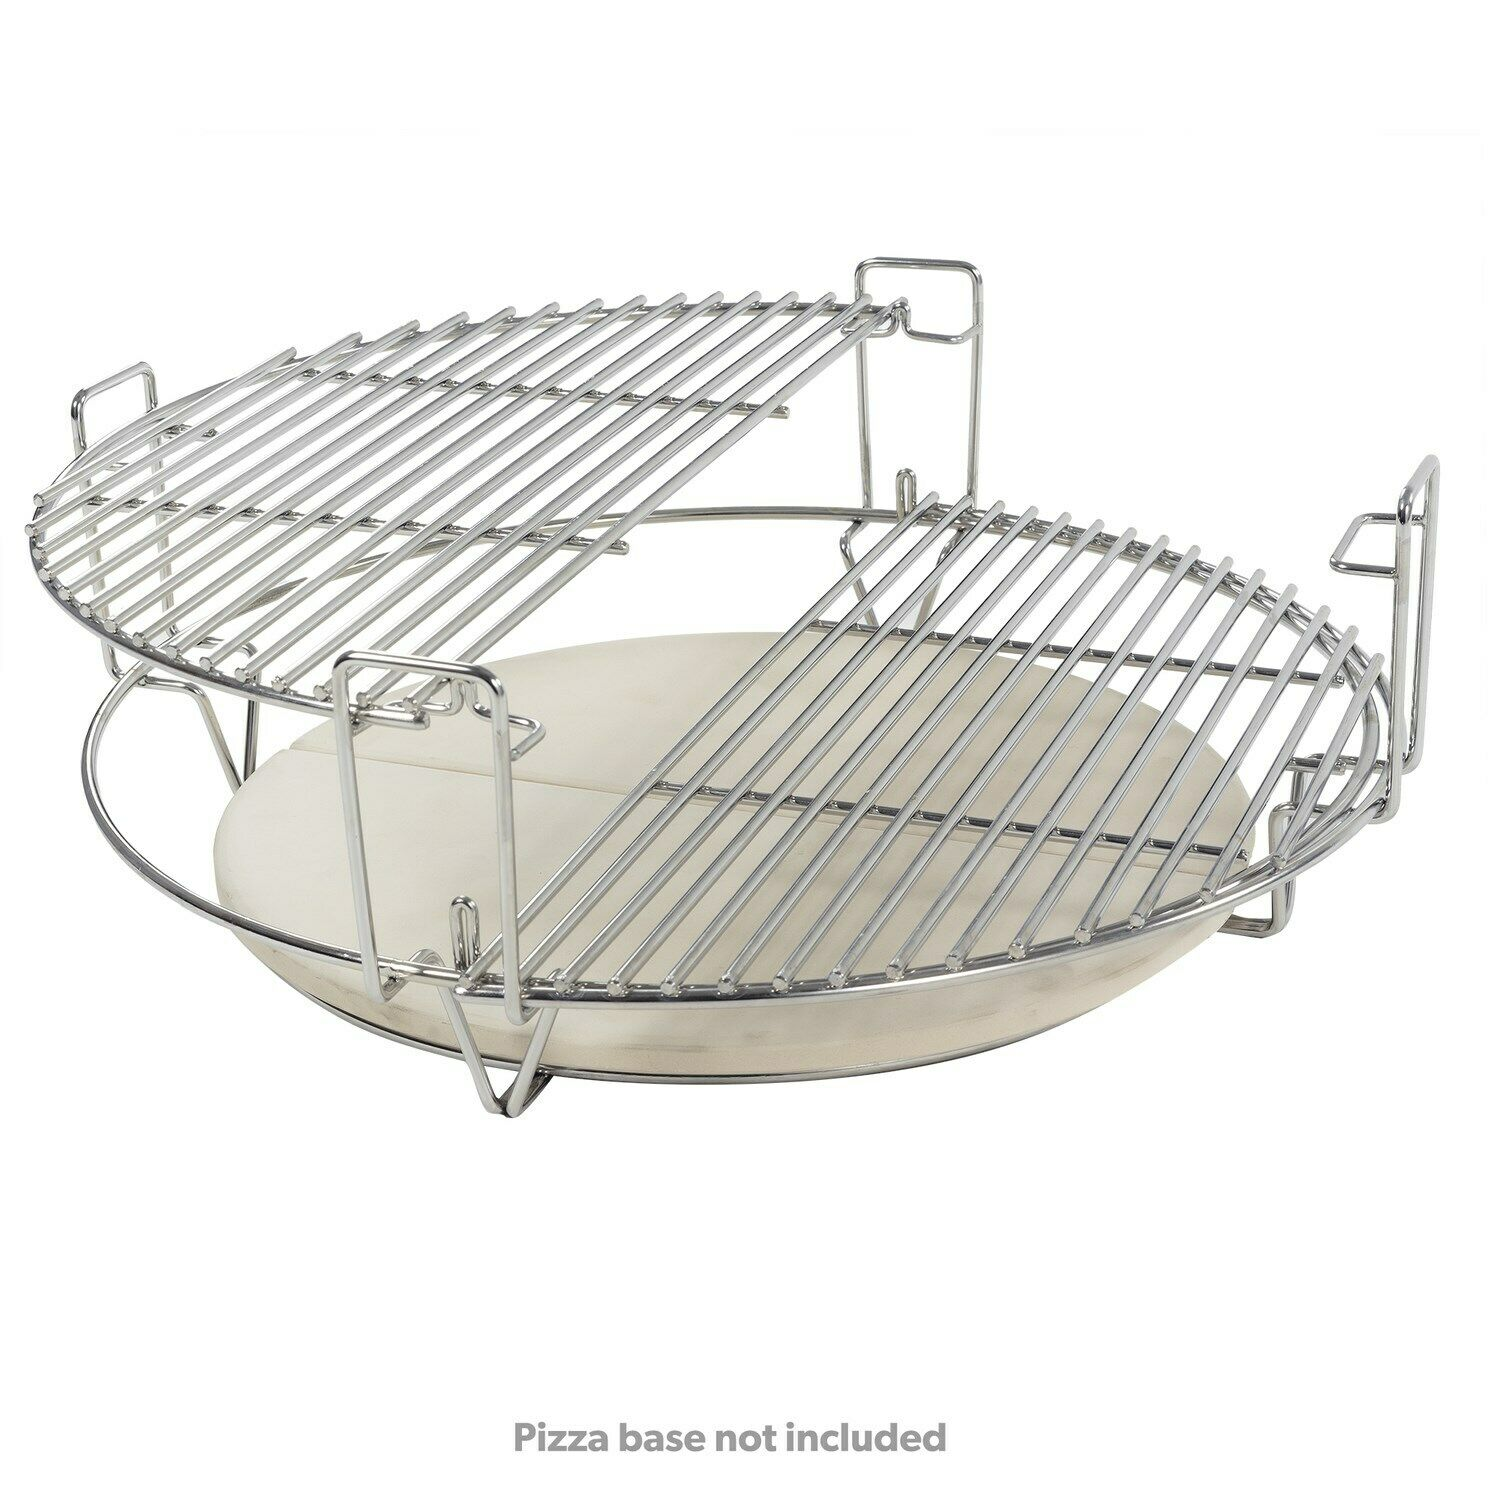 3 Layer Cooking Grid for 22